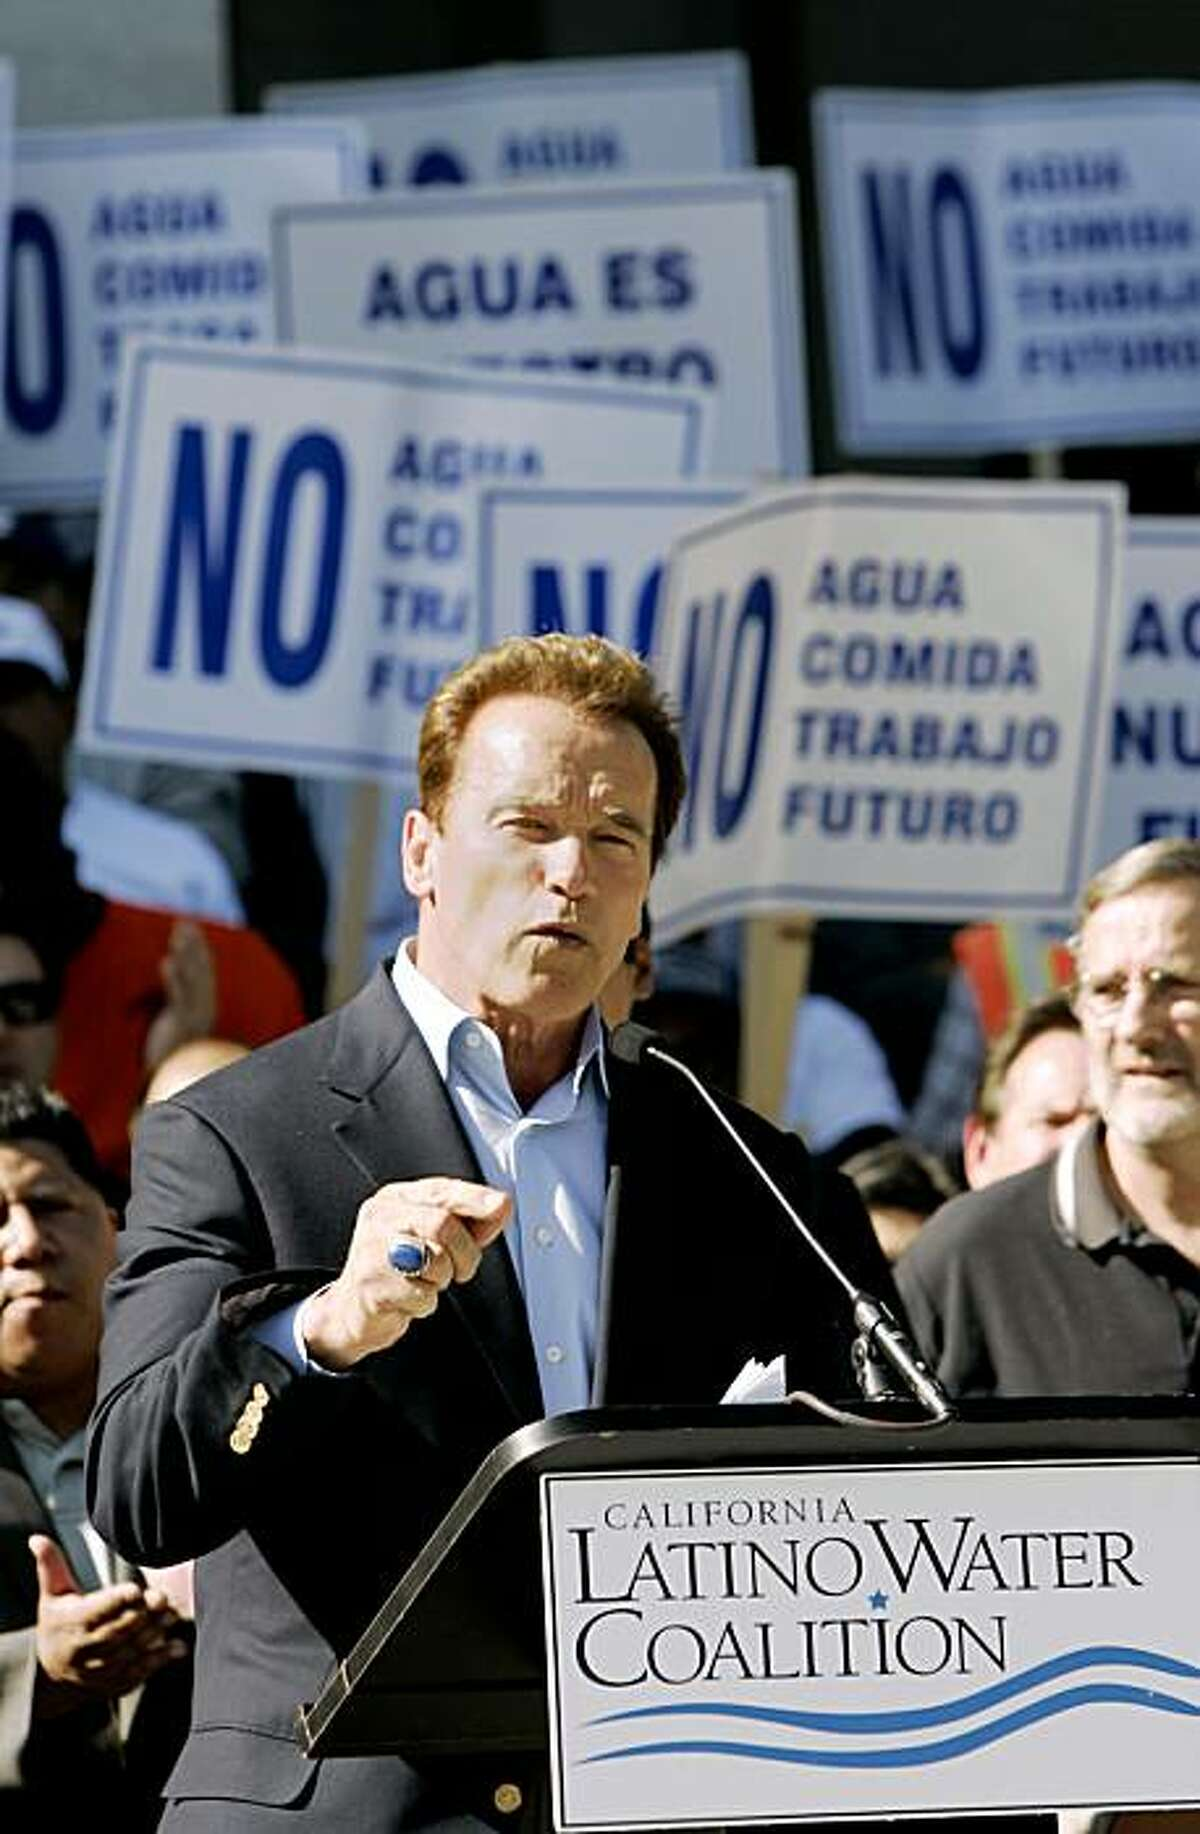 FILE - In this Oct. 9, 2009 file photo, Gov. Arnold Schwarzenegger speaks before a crowd of farm workers and members of a Hispanic water coalition outside the Capitol in Sacramento., Calif. Schwarzenegger and legislative leaders were trying to work out a water deal Sunday Oct. 11, 2009 as a midnight deadline neared for the governor to act on more than 700 bills. (AP Photo/Rich Pedroncelli, File)